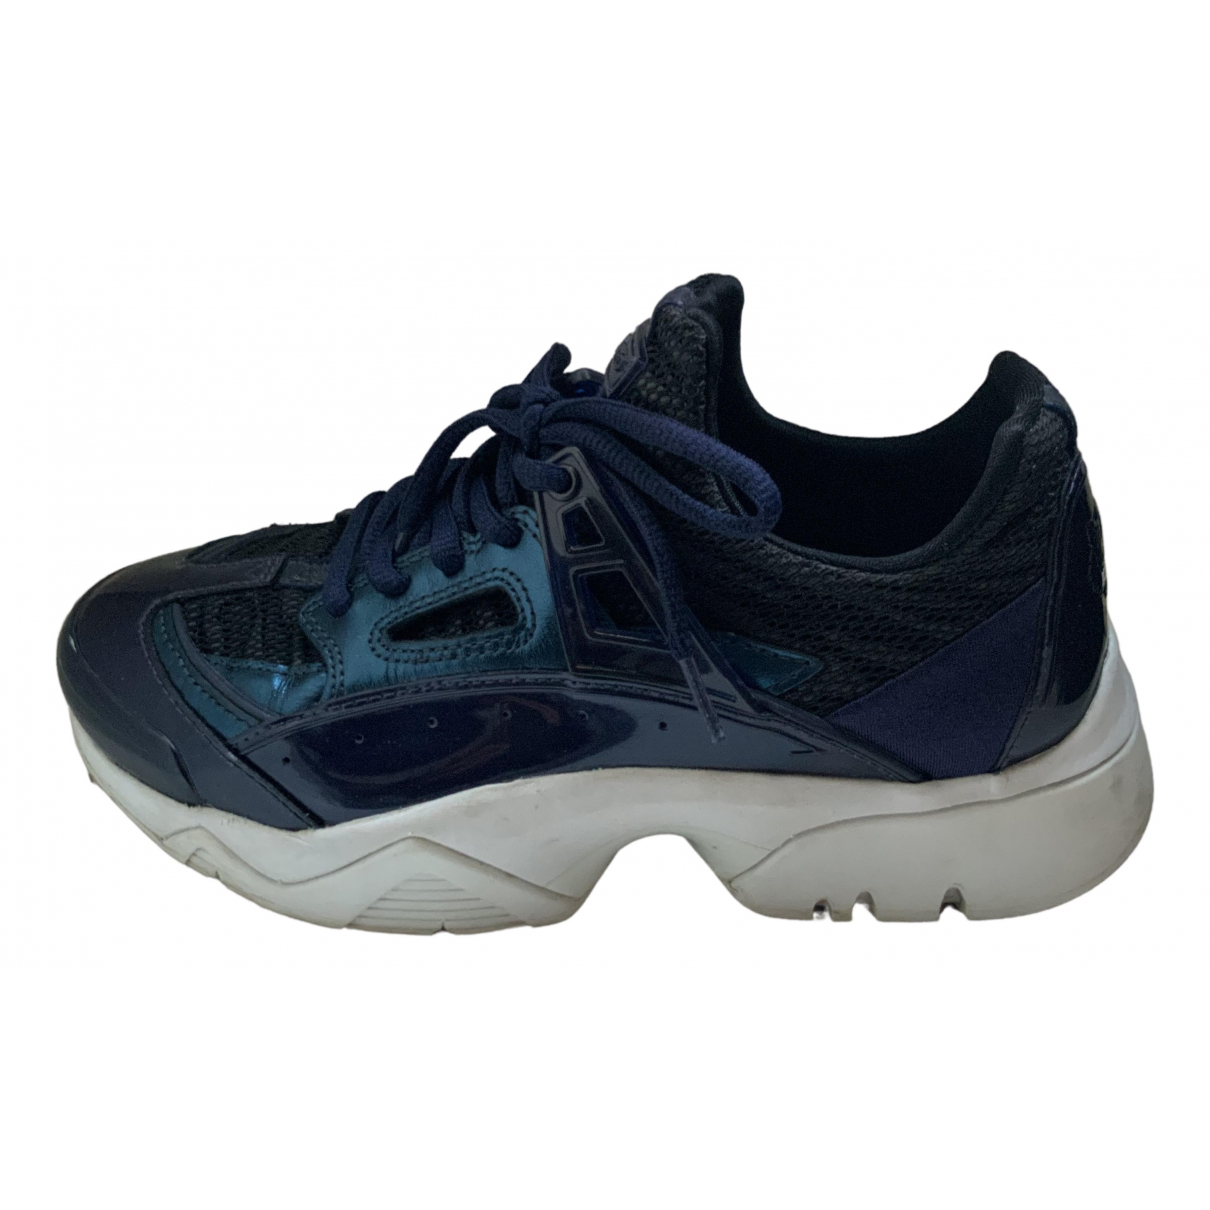 Kenzo \N Blue Patent leather Trainers for Women 35 EU